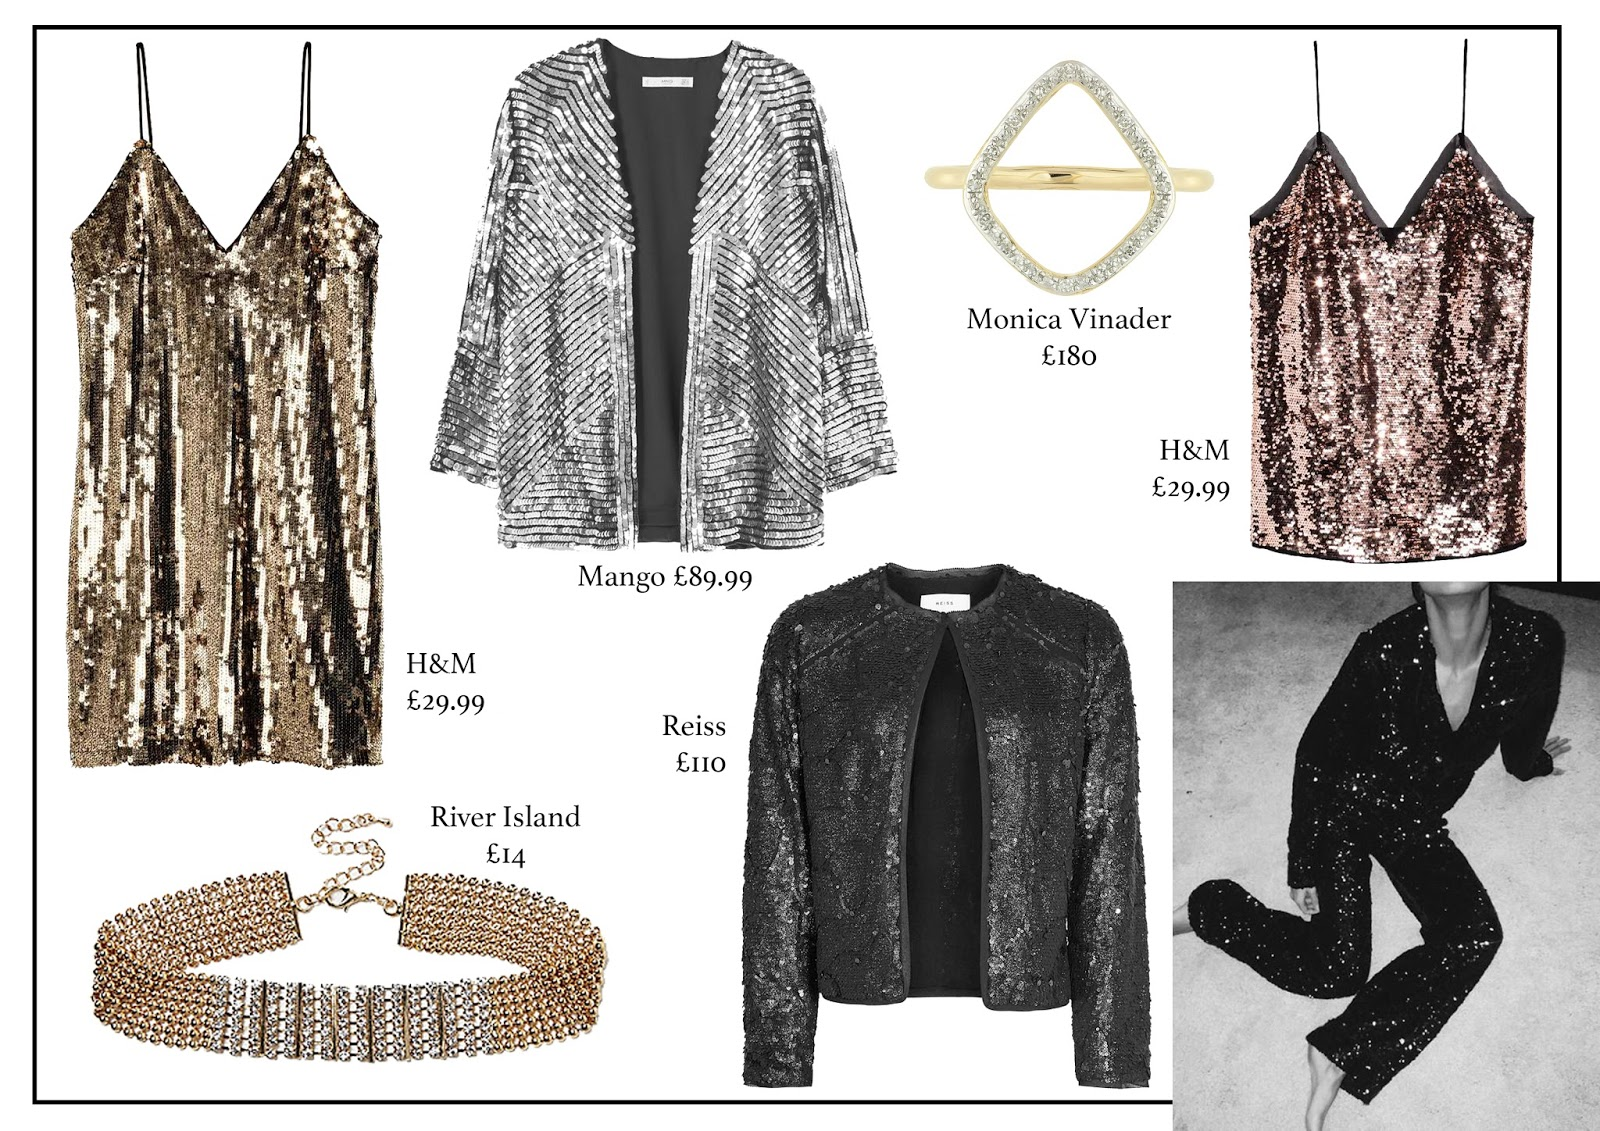 sparkle, January, h&m, mango, monica vinader, reiss, river island, fashion, fashion blog, aw16